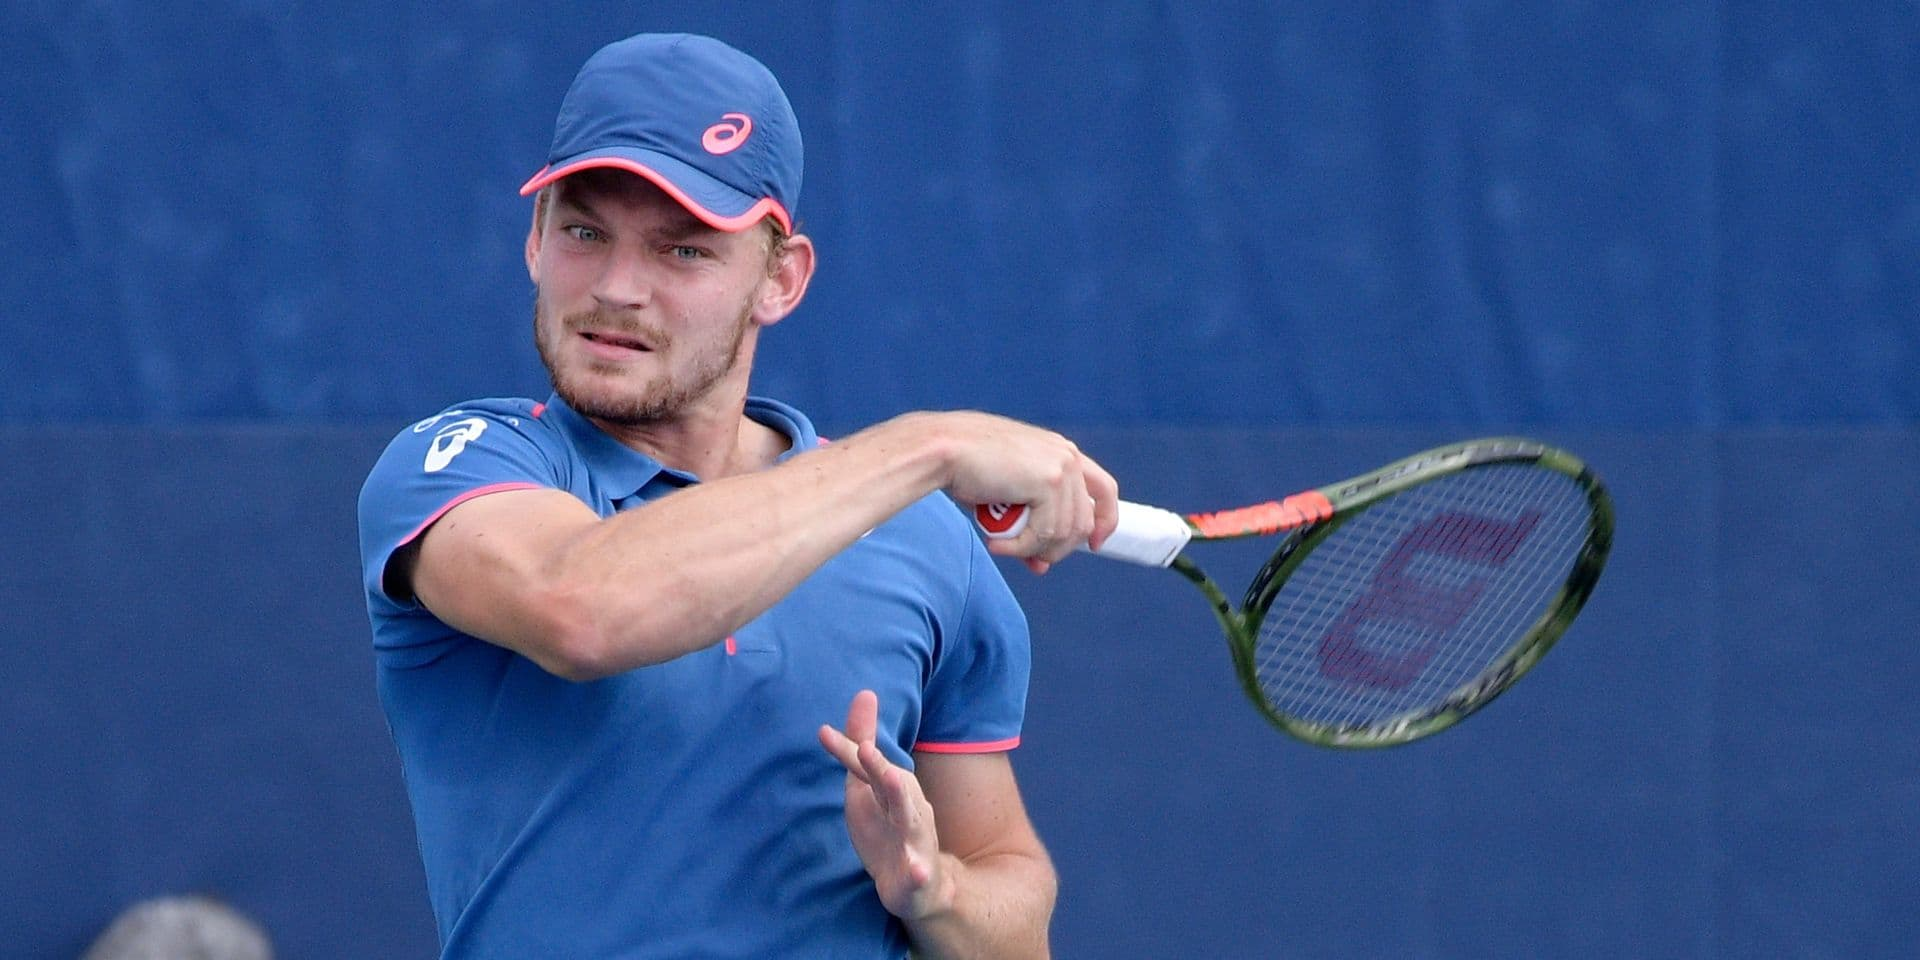 Belgian David Goffin pictured in action during a tennis match between Dutch Robin Haase (ATP 49) and Belgian David Goffin (ATP 10), in the second round of the men's singles at the 118th US Open Grand Slam tennis tournament, at Flushing Meadow, in New York City, USA, Thursday 30 August 2018. BELGA PHOTO YORICK JANSENS